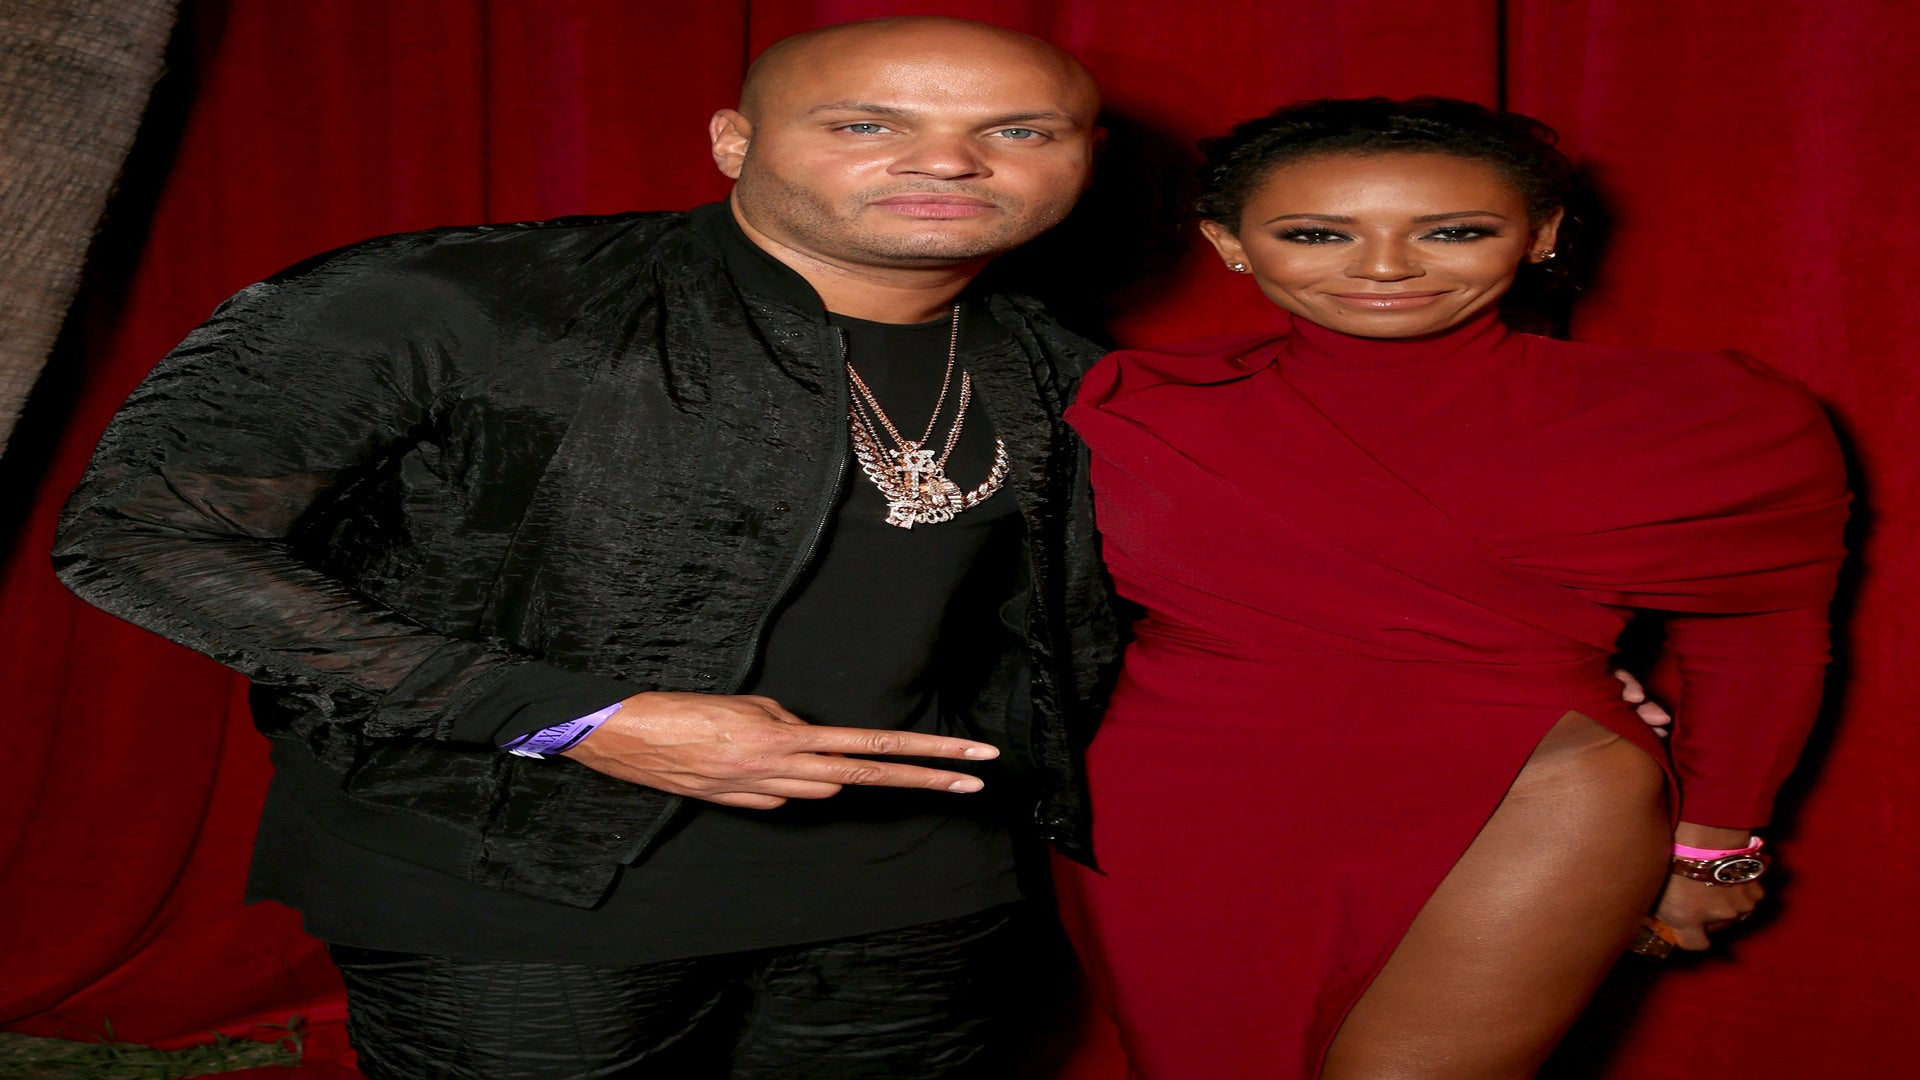 Mel B Officially Divorced from Stephen Belafonte After 10 Years of Marriage